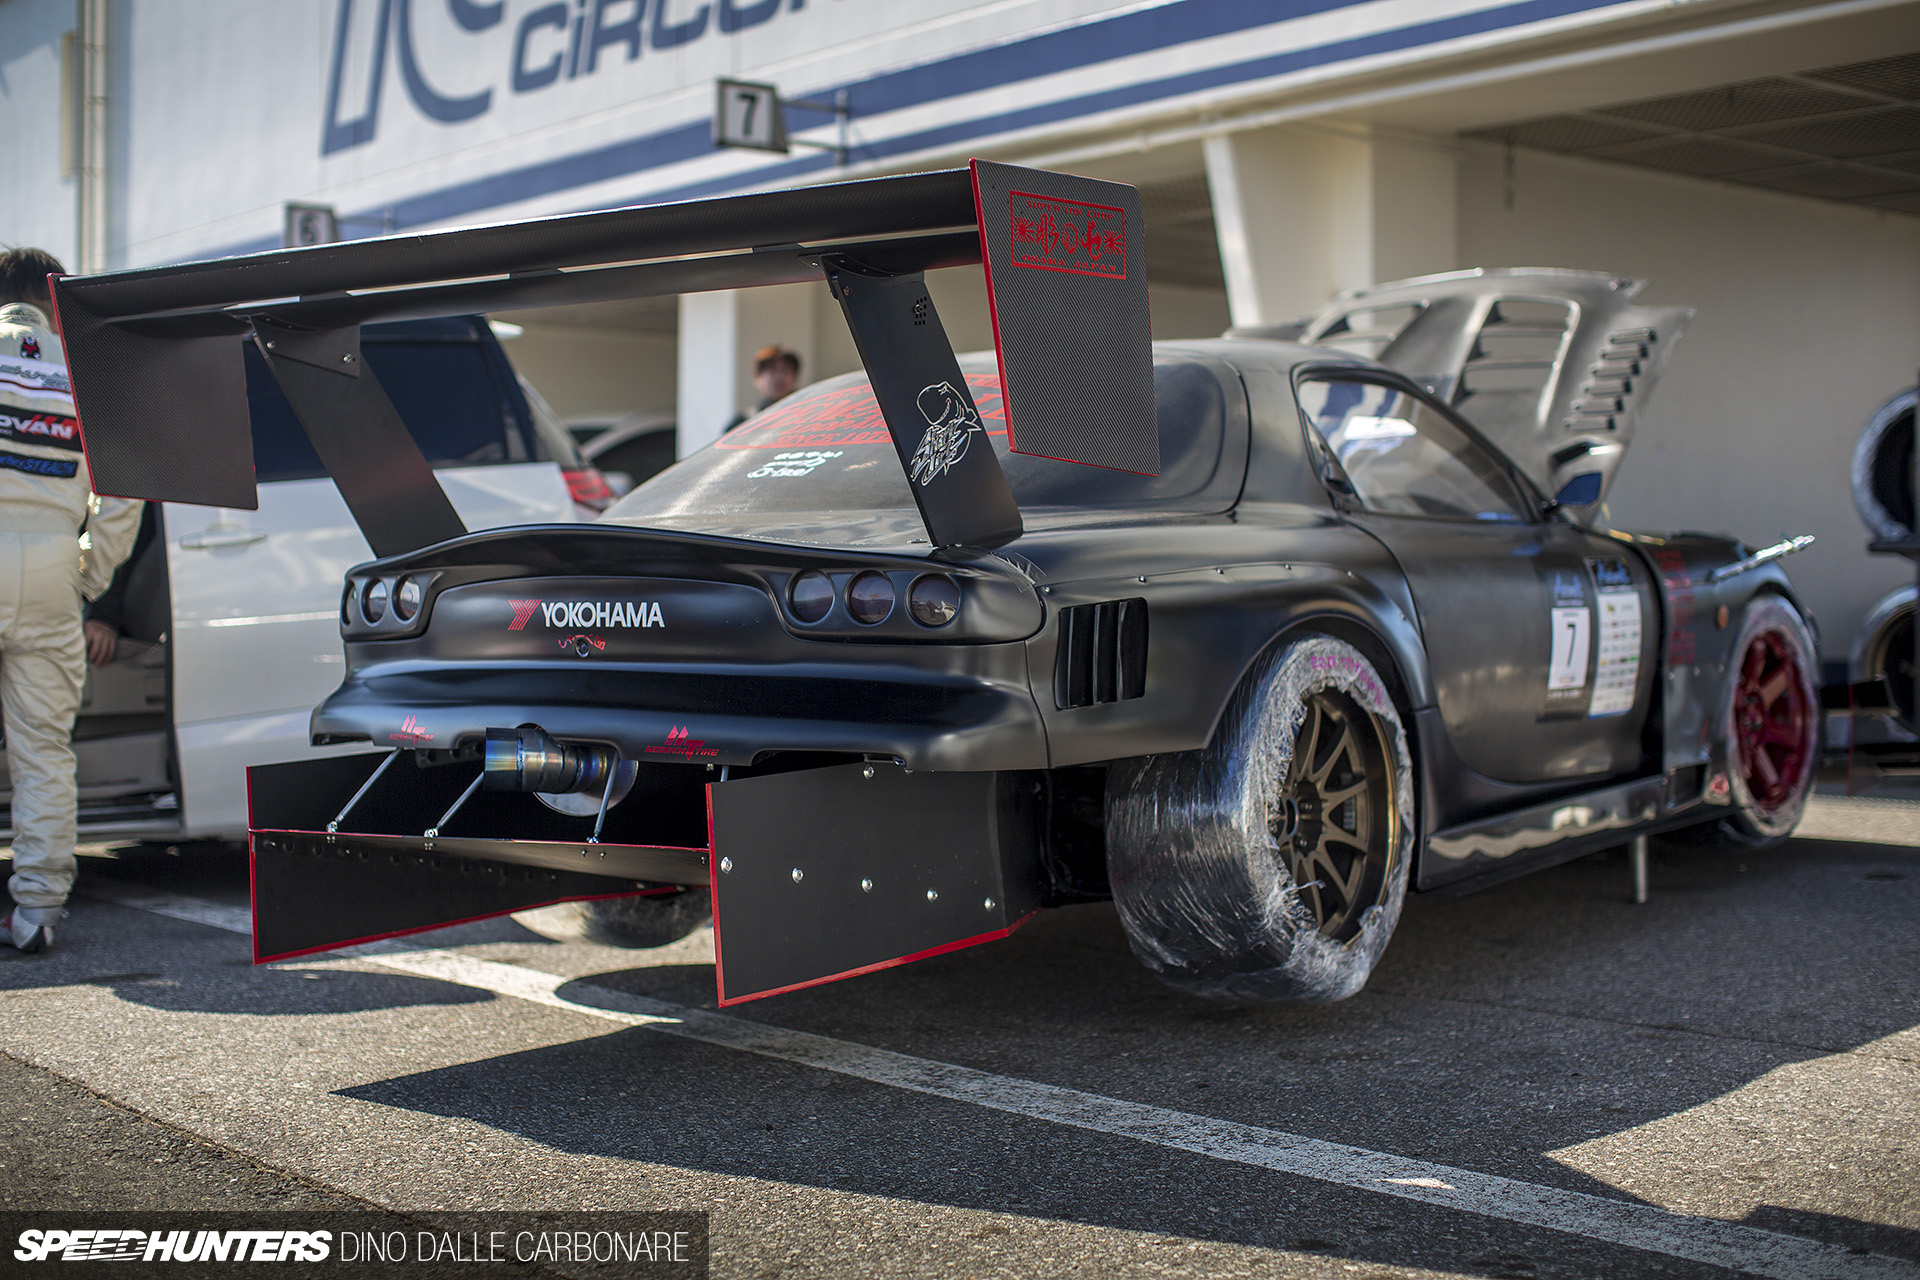 20B Buzz: The Full Stage FD3S RX-7